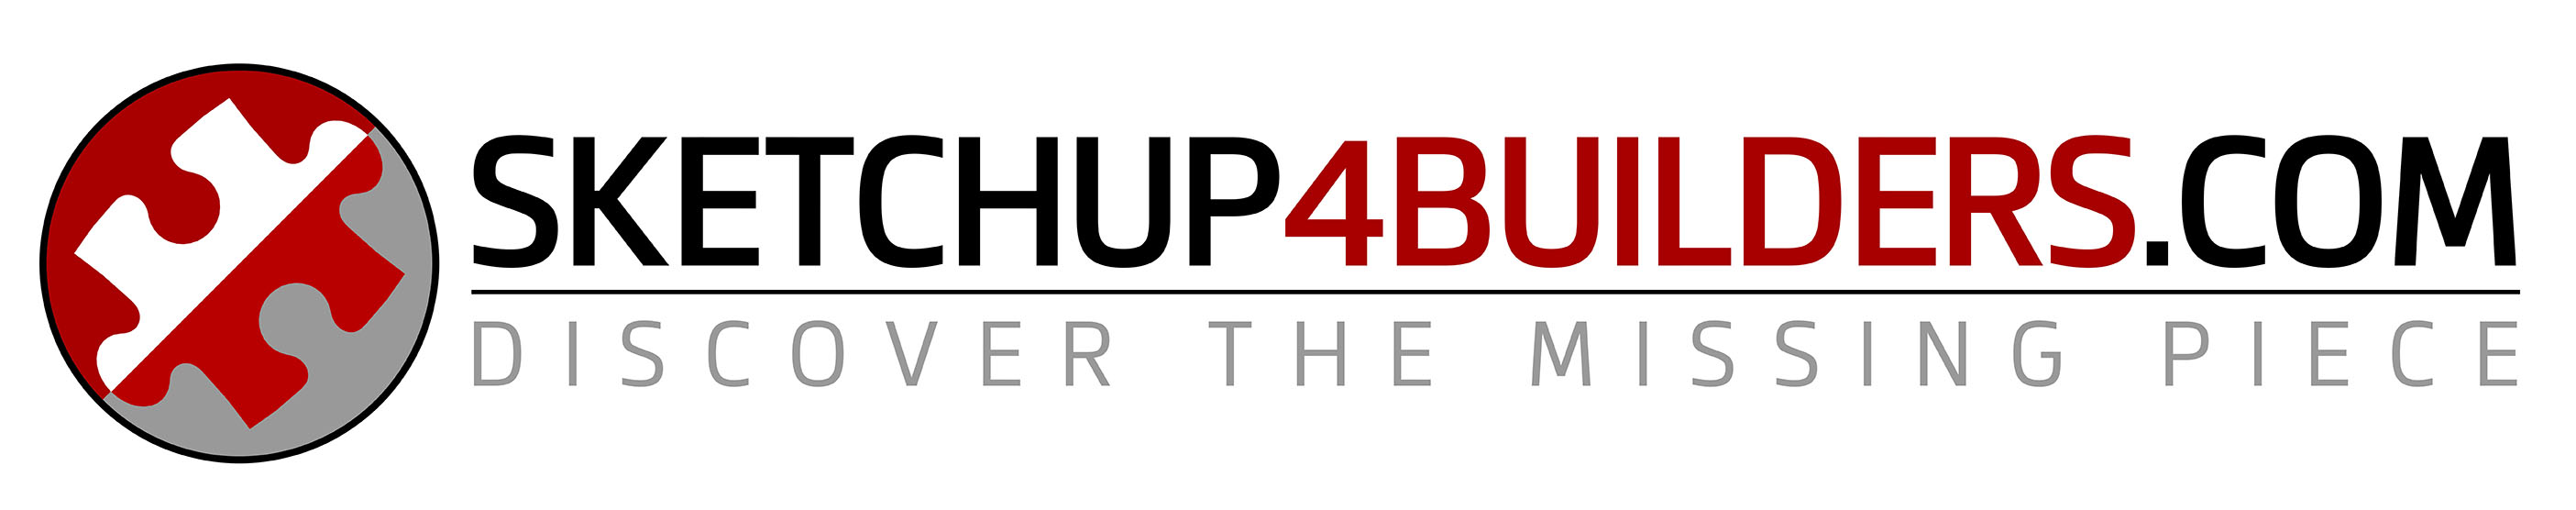 SketchUp4Builders com | A SketchUp Community and Resource